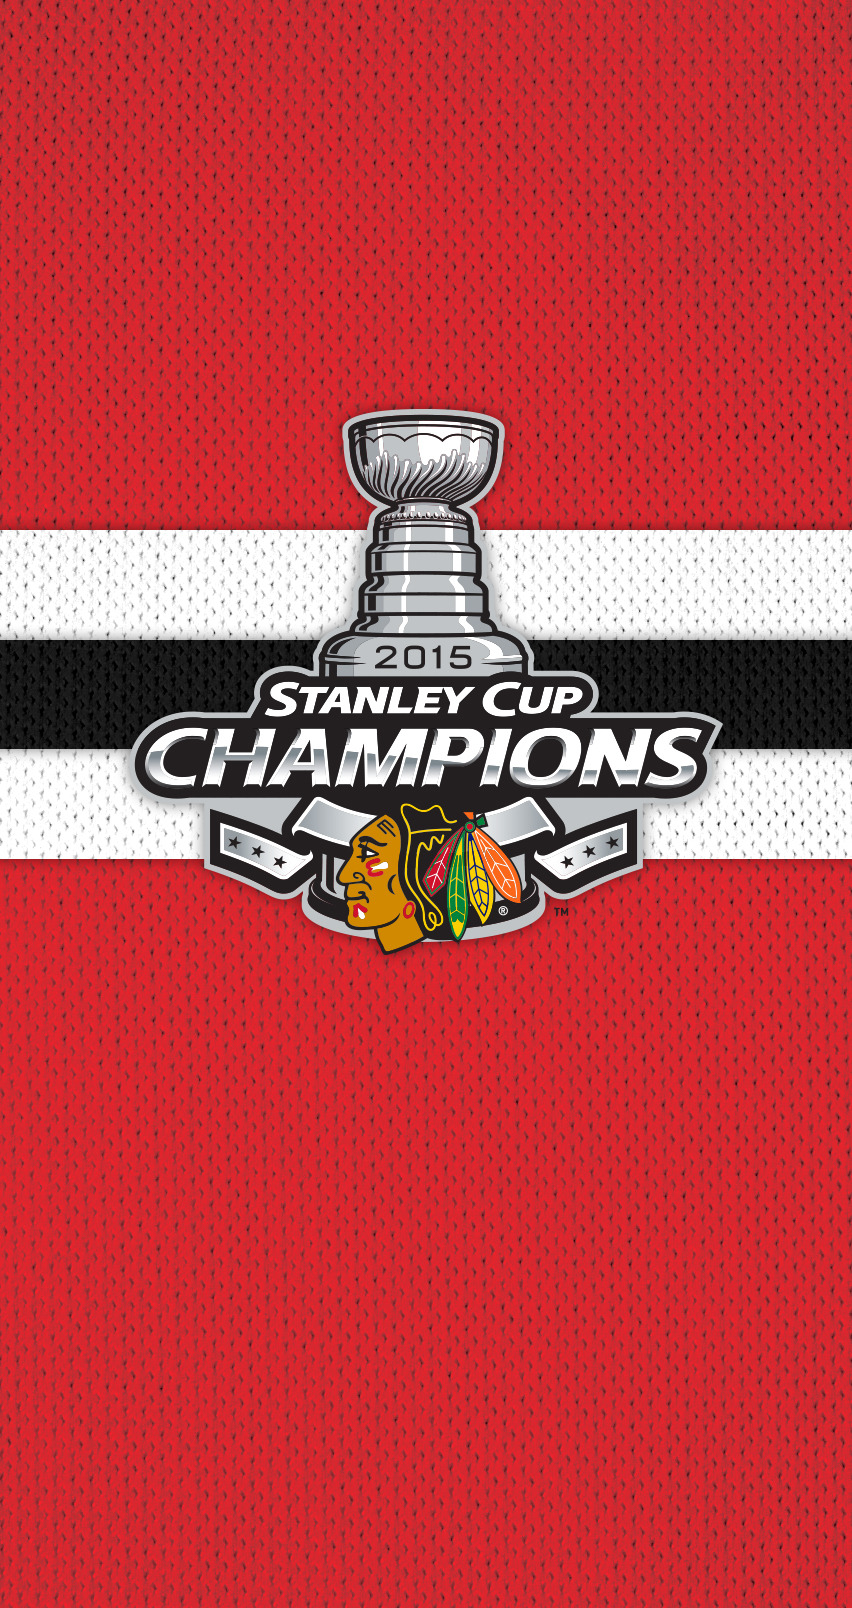 Stanley Cup Champions 852x1608